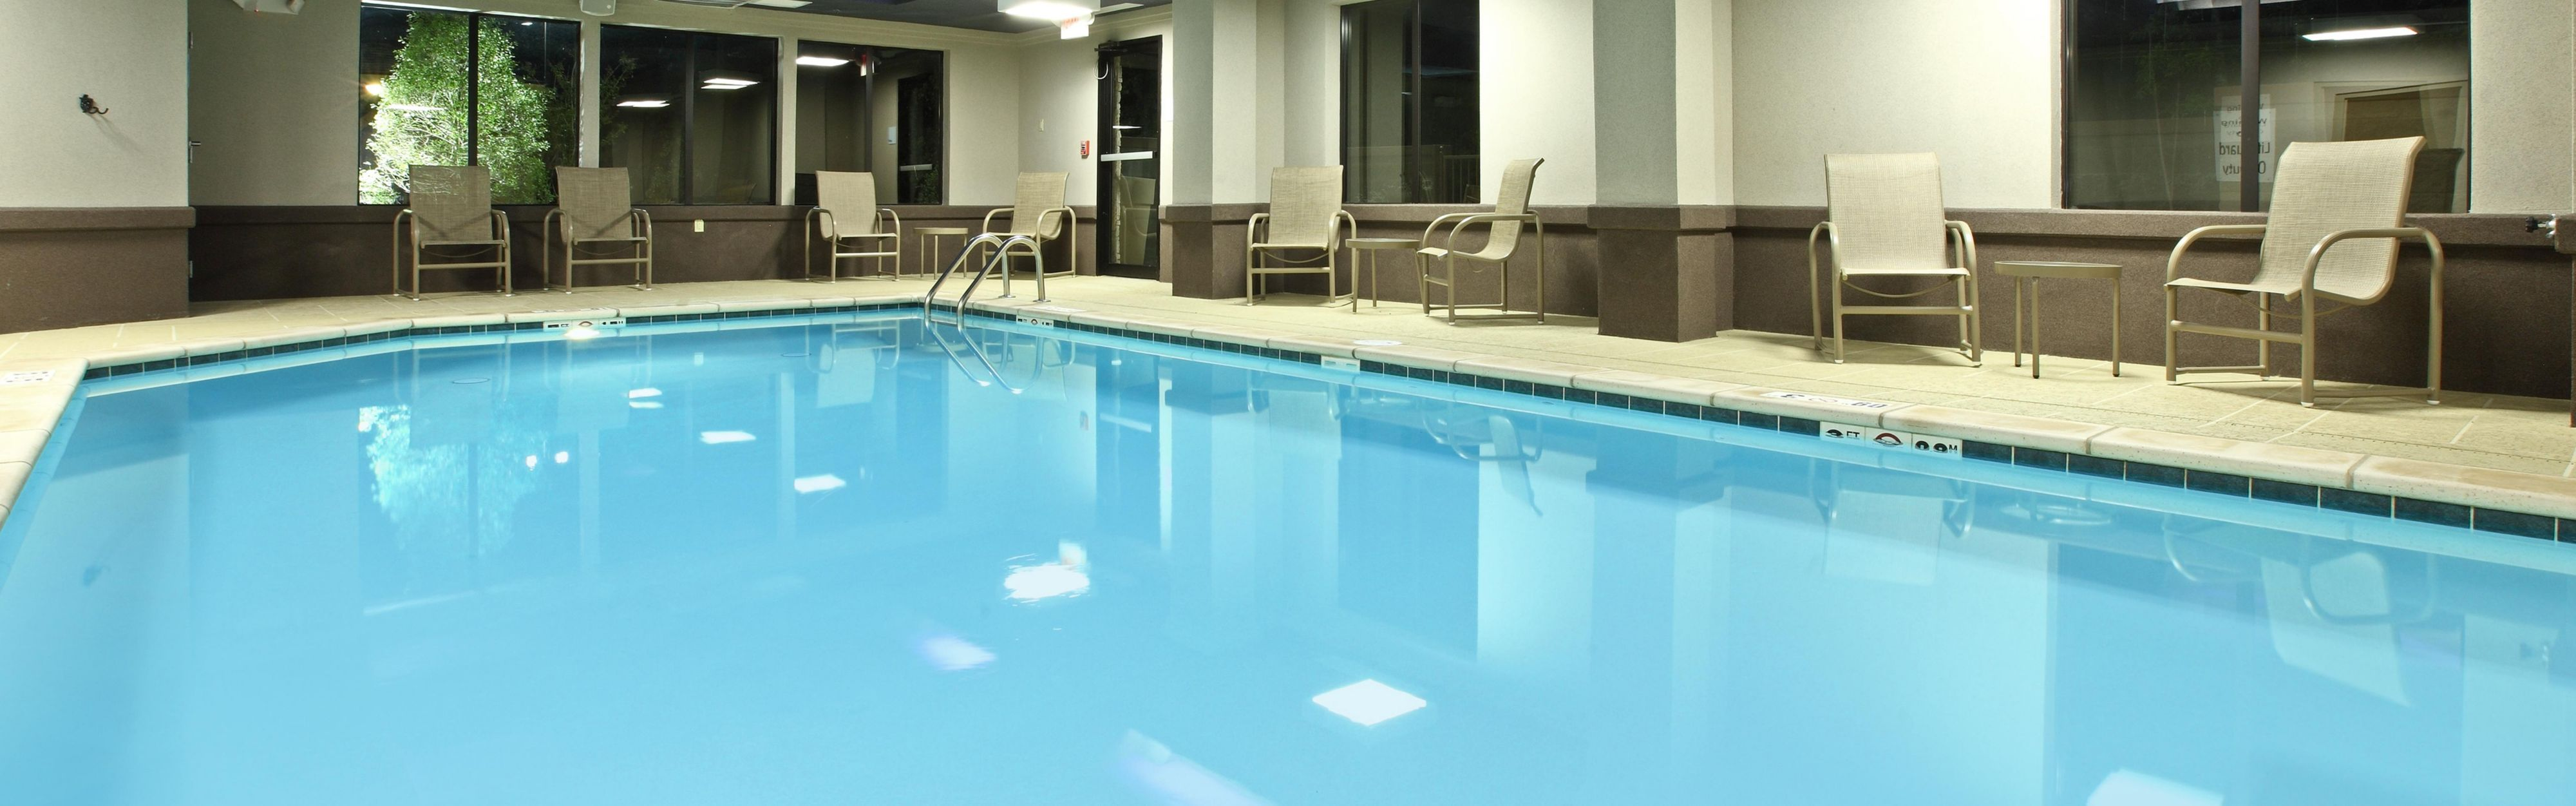 Holiday Inn Express & Suites Maumelle - Little Rock NW image 2